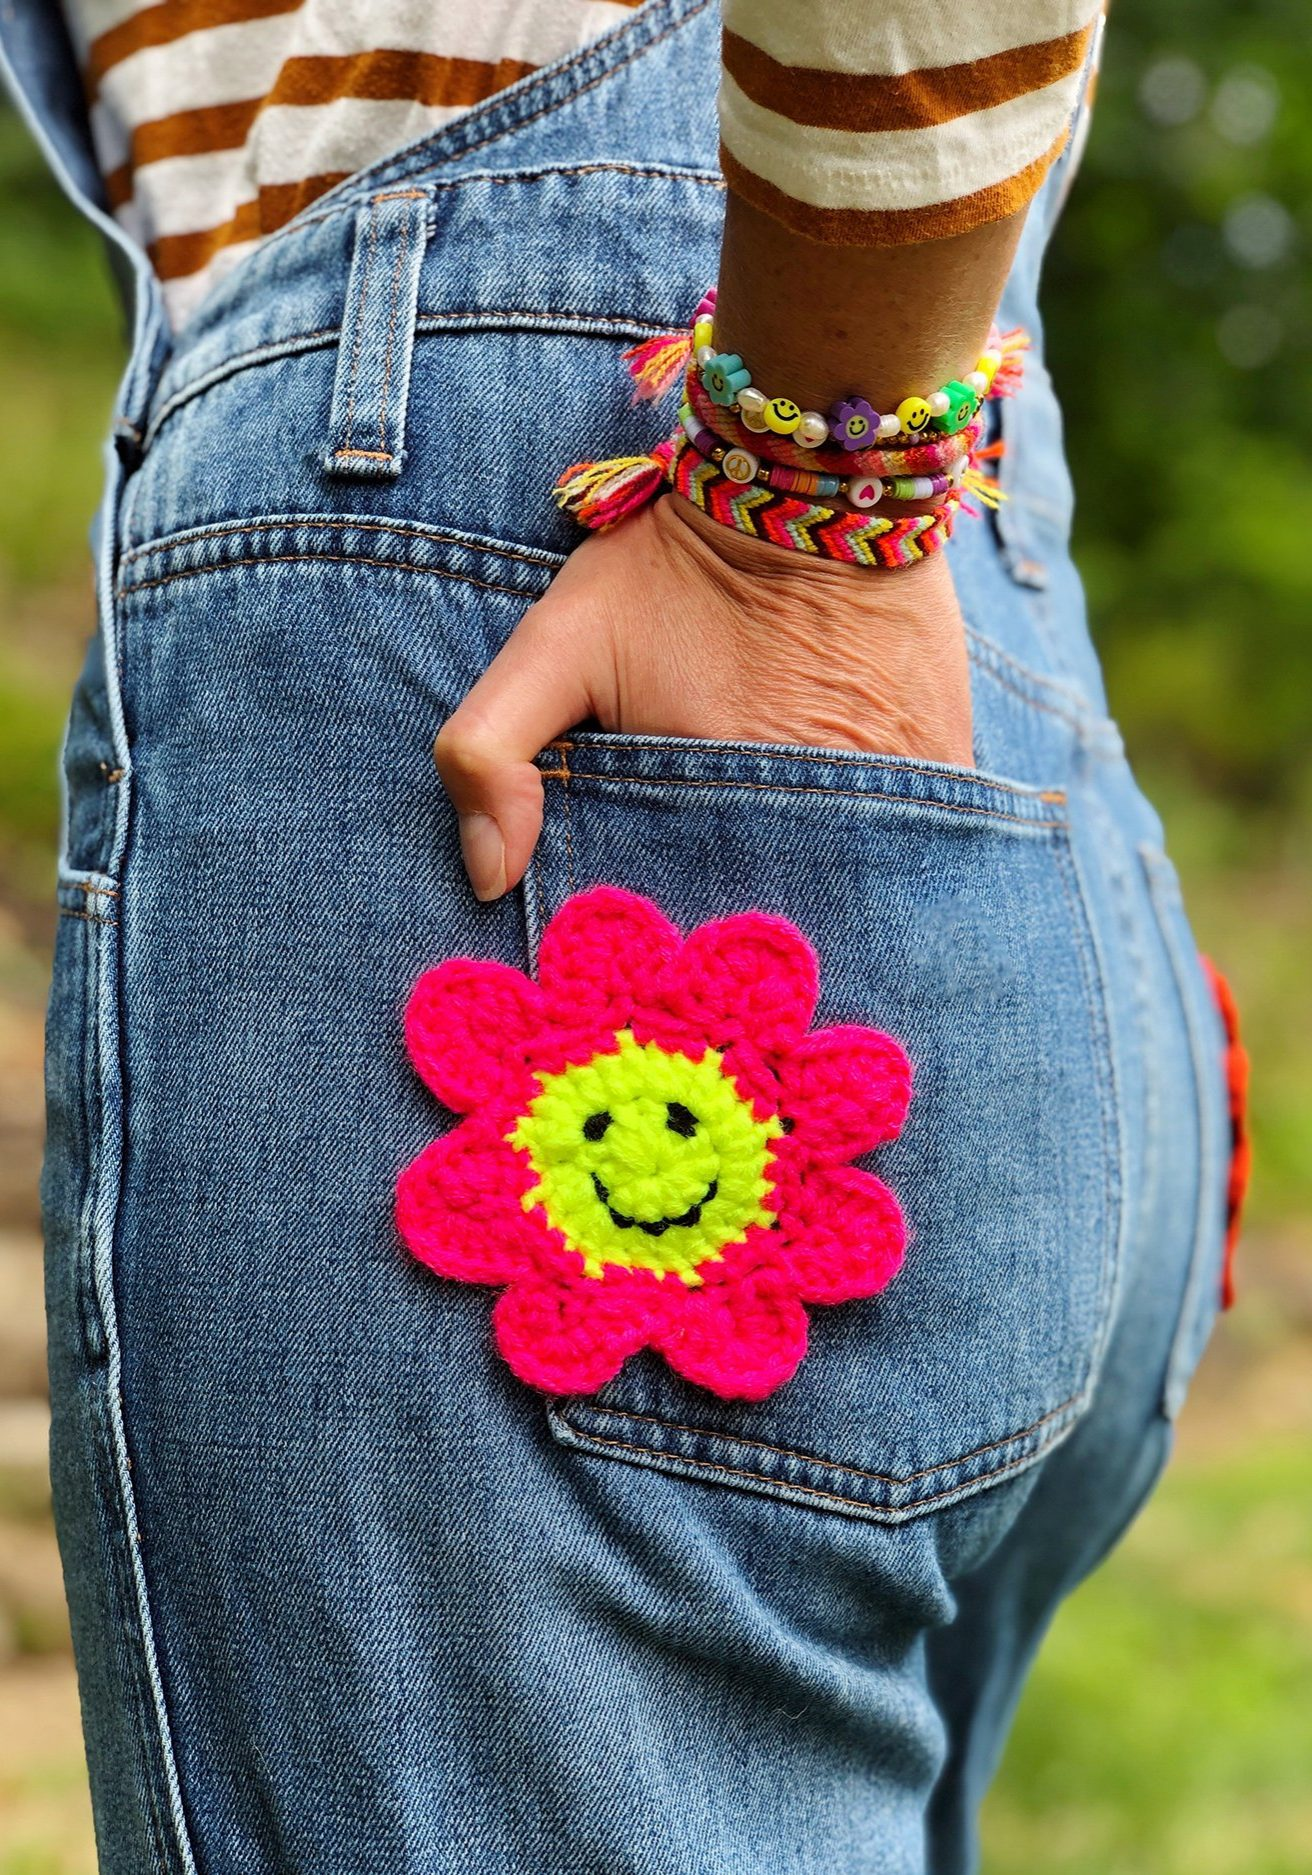 DIY Crochet Smiley Face Flower Patches - How To | The Neon Tea Party